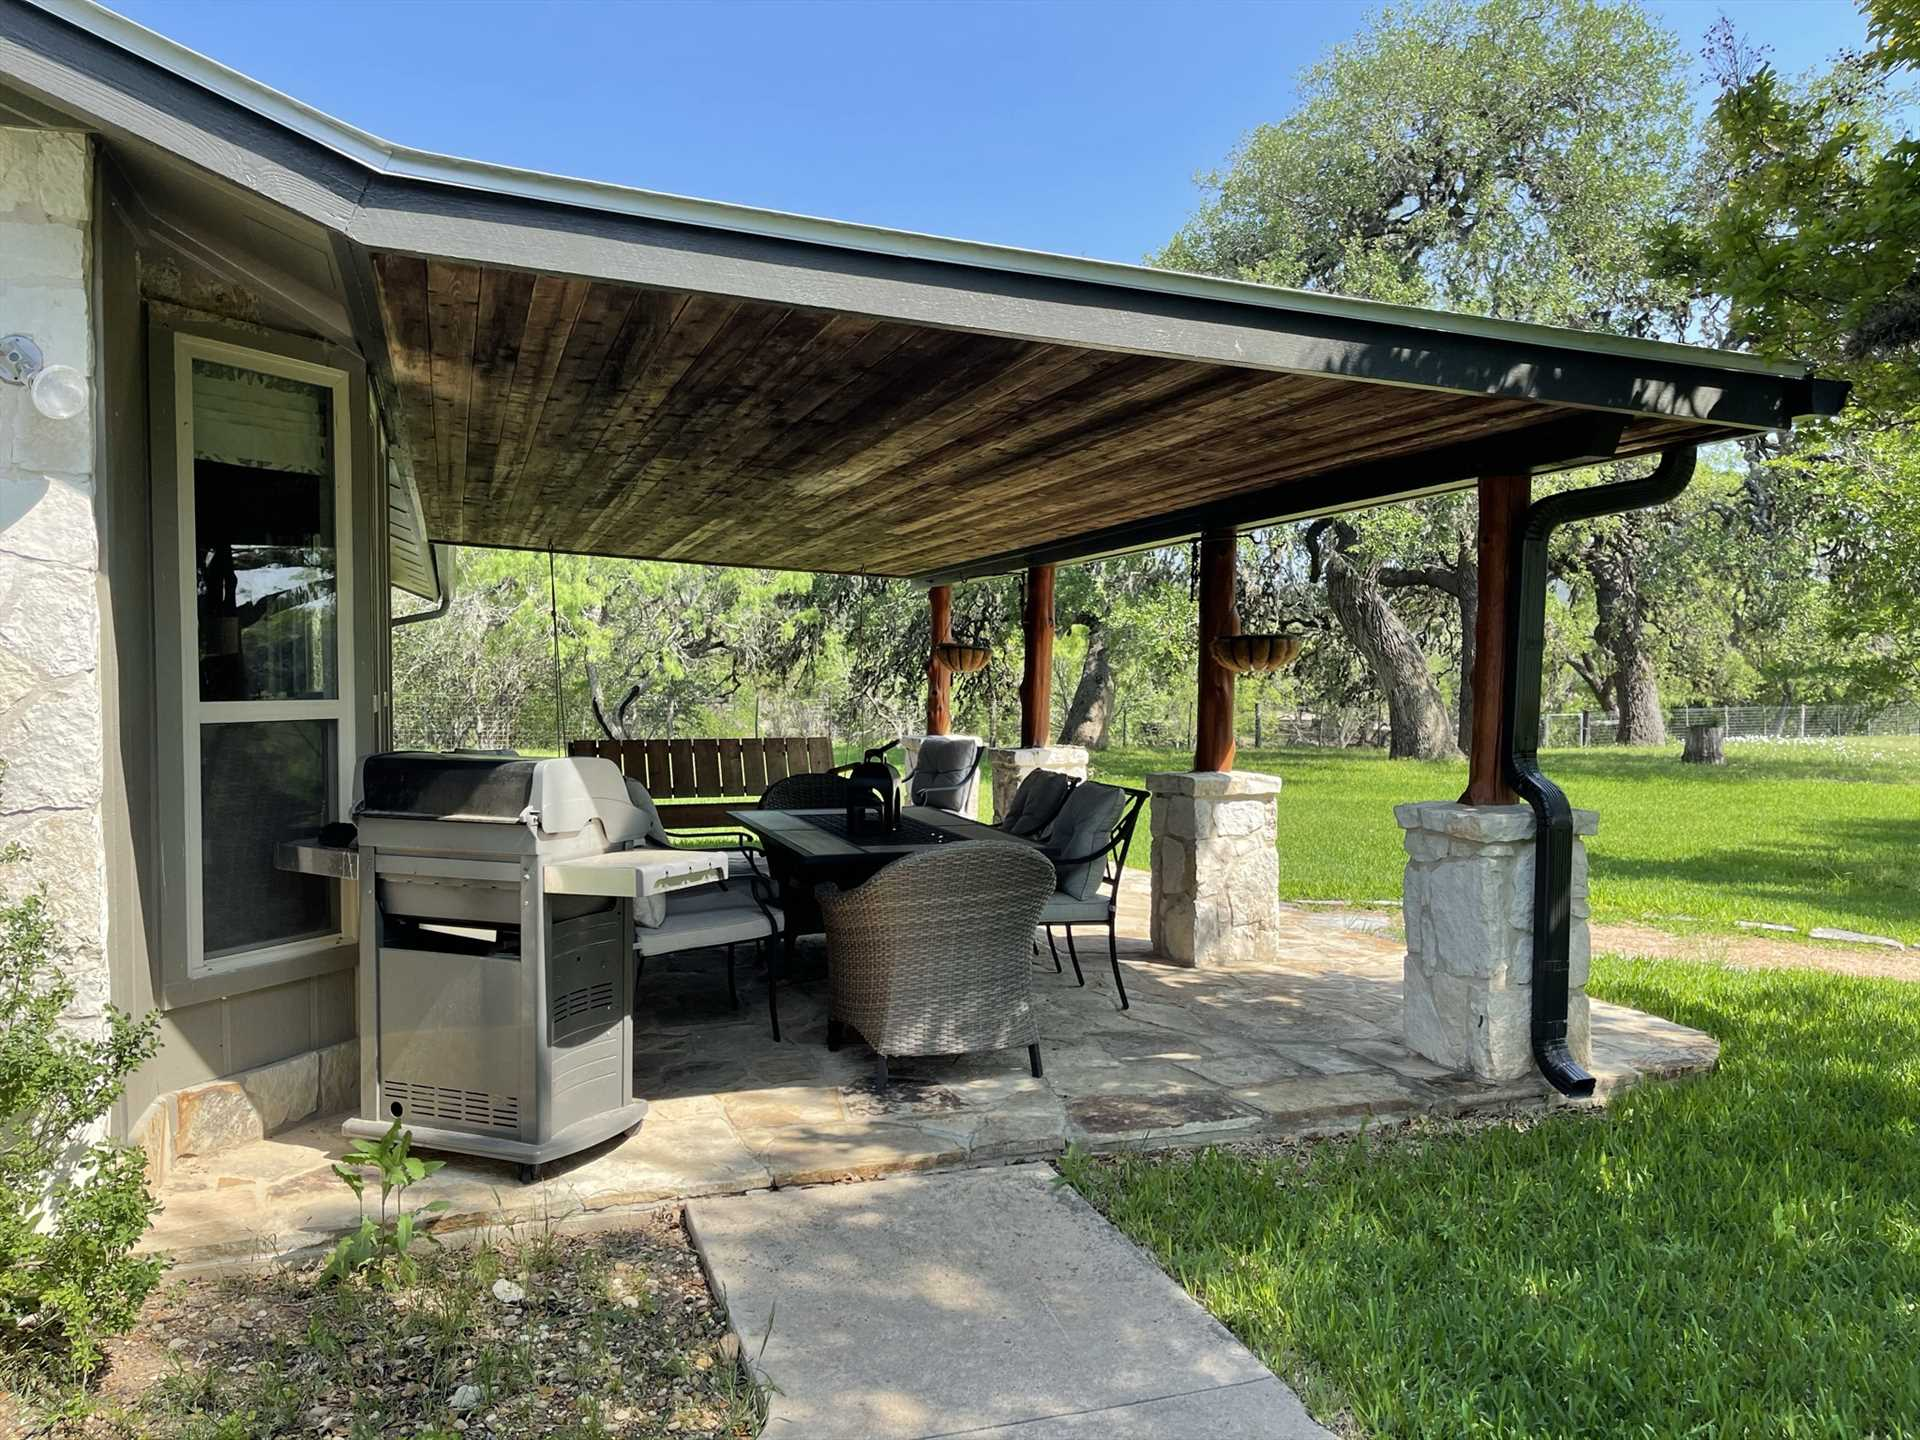 Unique stone-and-tree-trunk pillars support the shaded cover for the patio, a rustic and comfortable place to enjoy the Hill Country.